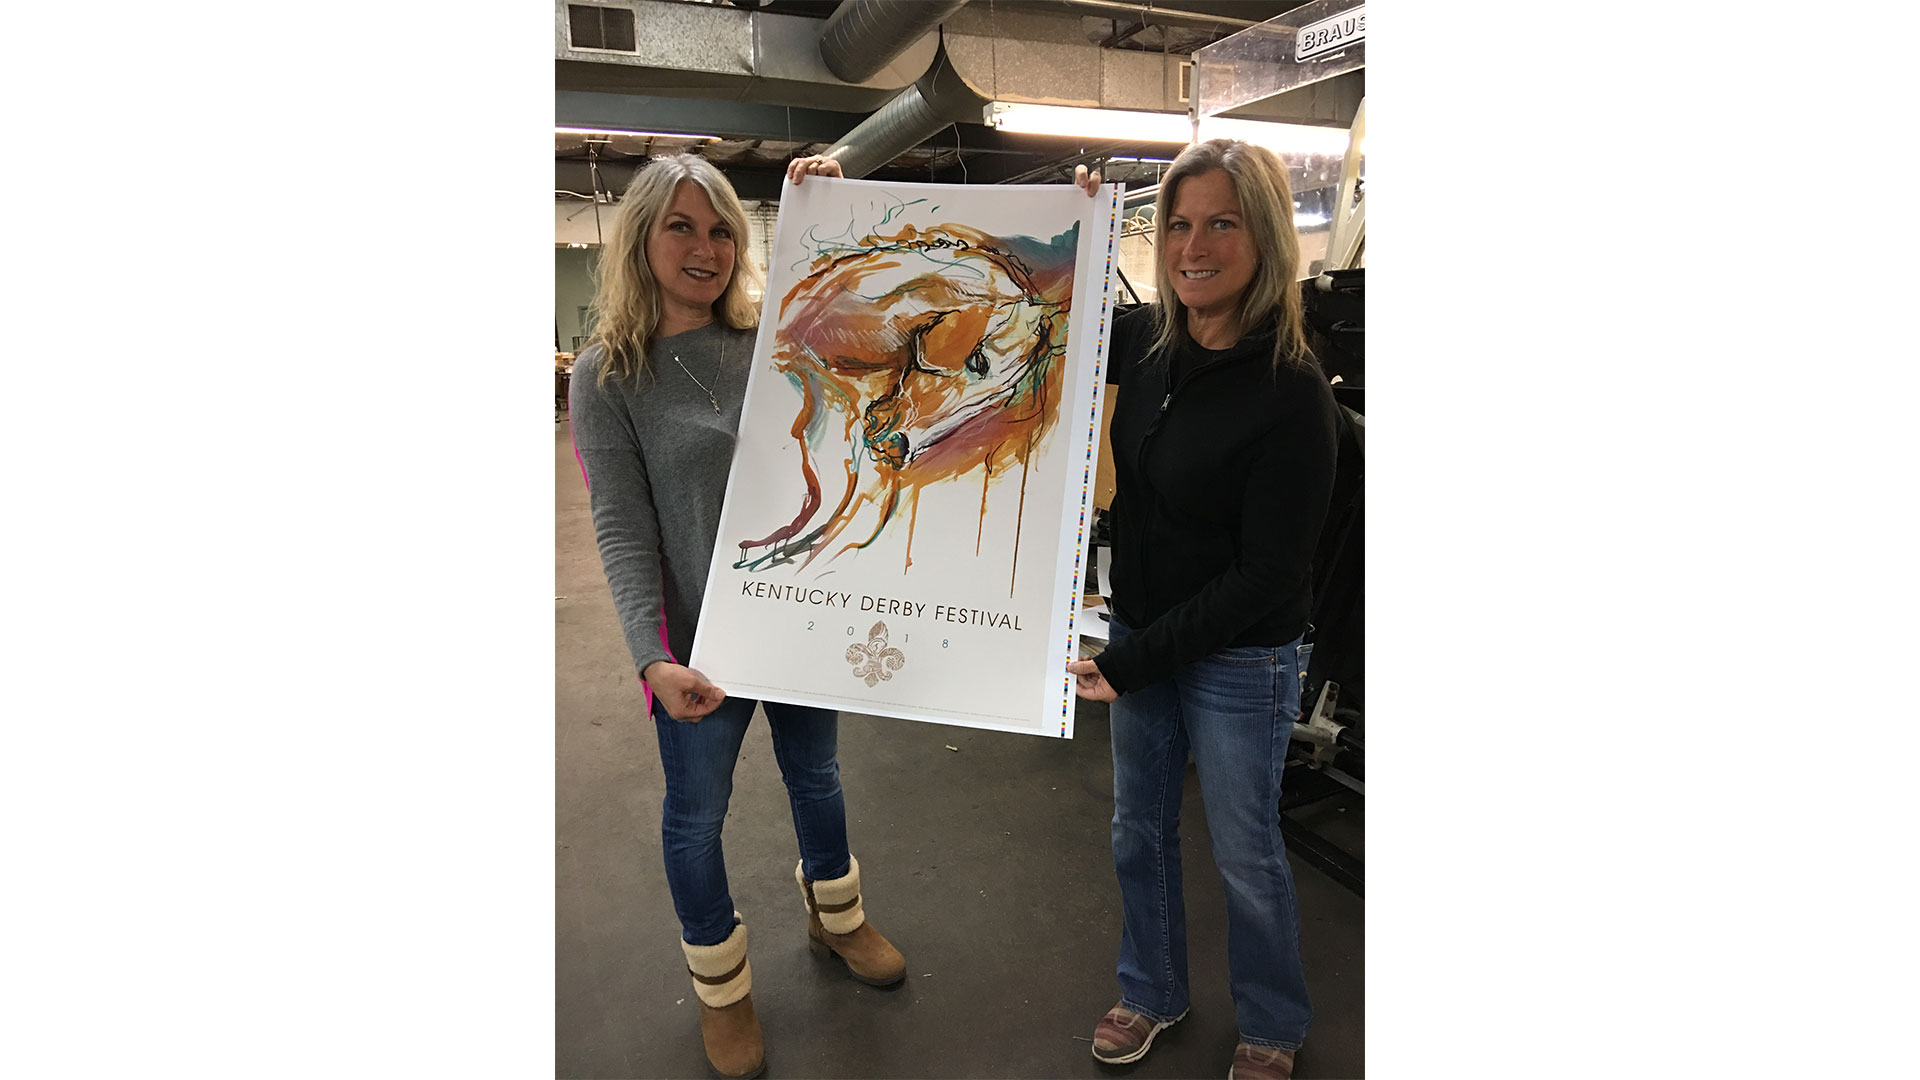 The Barnhart Sisters and the Kentucky Derby Poster 2018